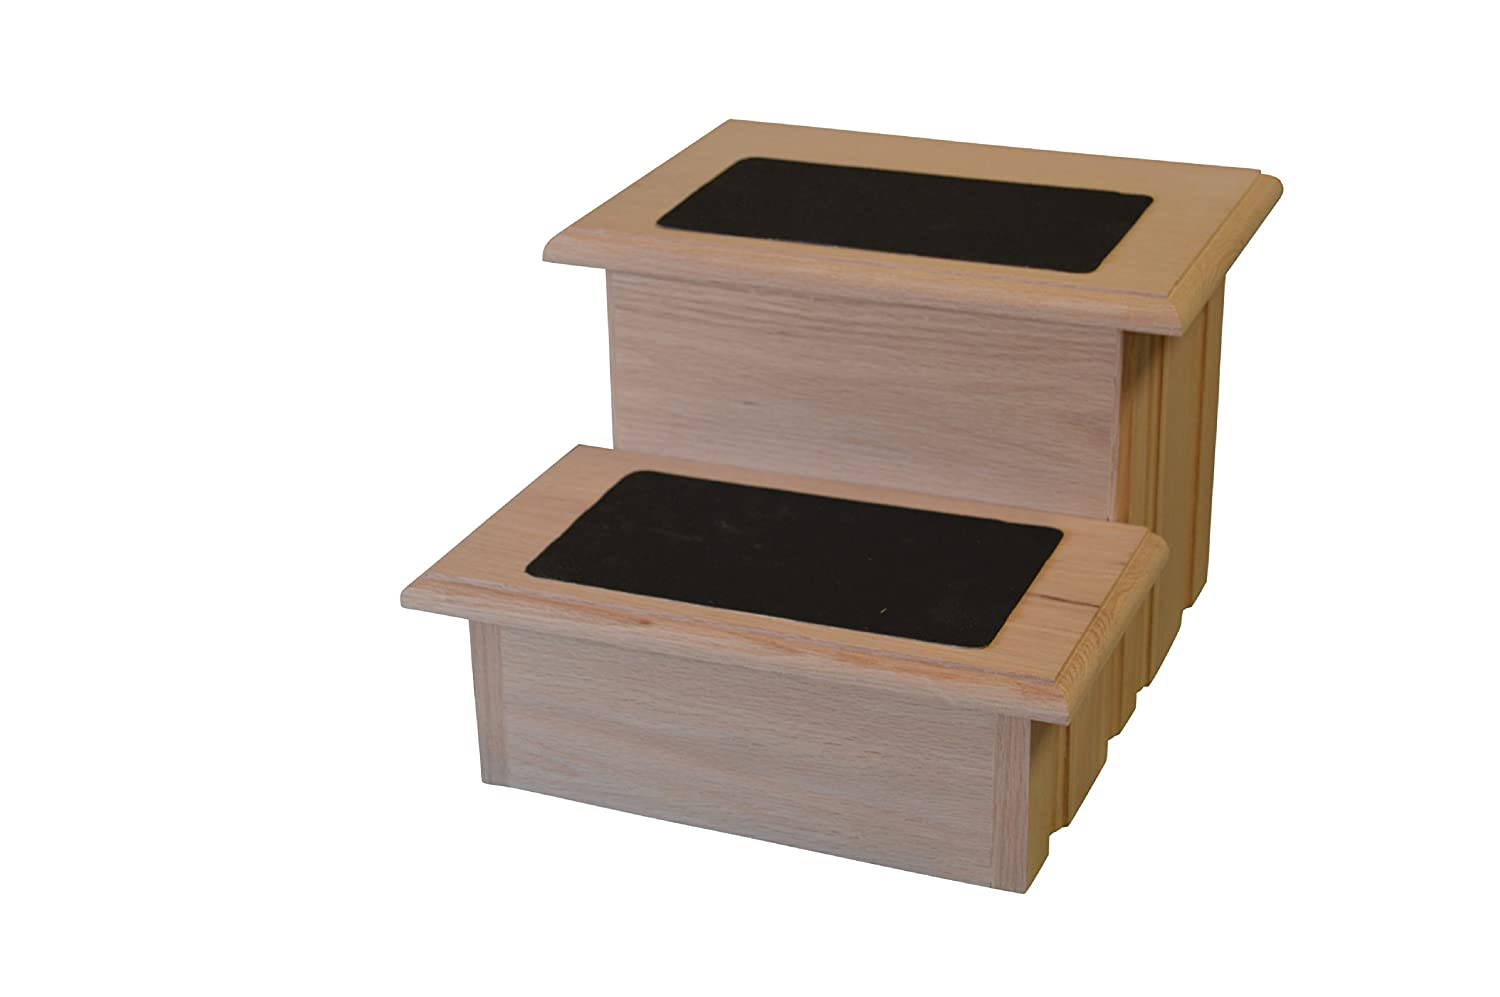 Unfinished Solid Oak Step Stool With Solid Tread with Non Slip Surface Included 11 /½ Tall